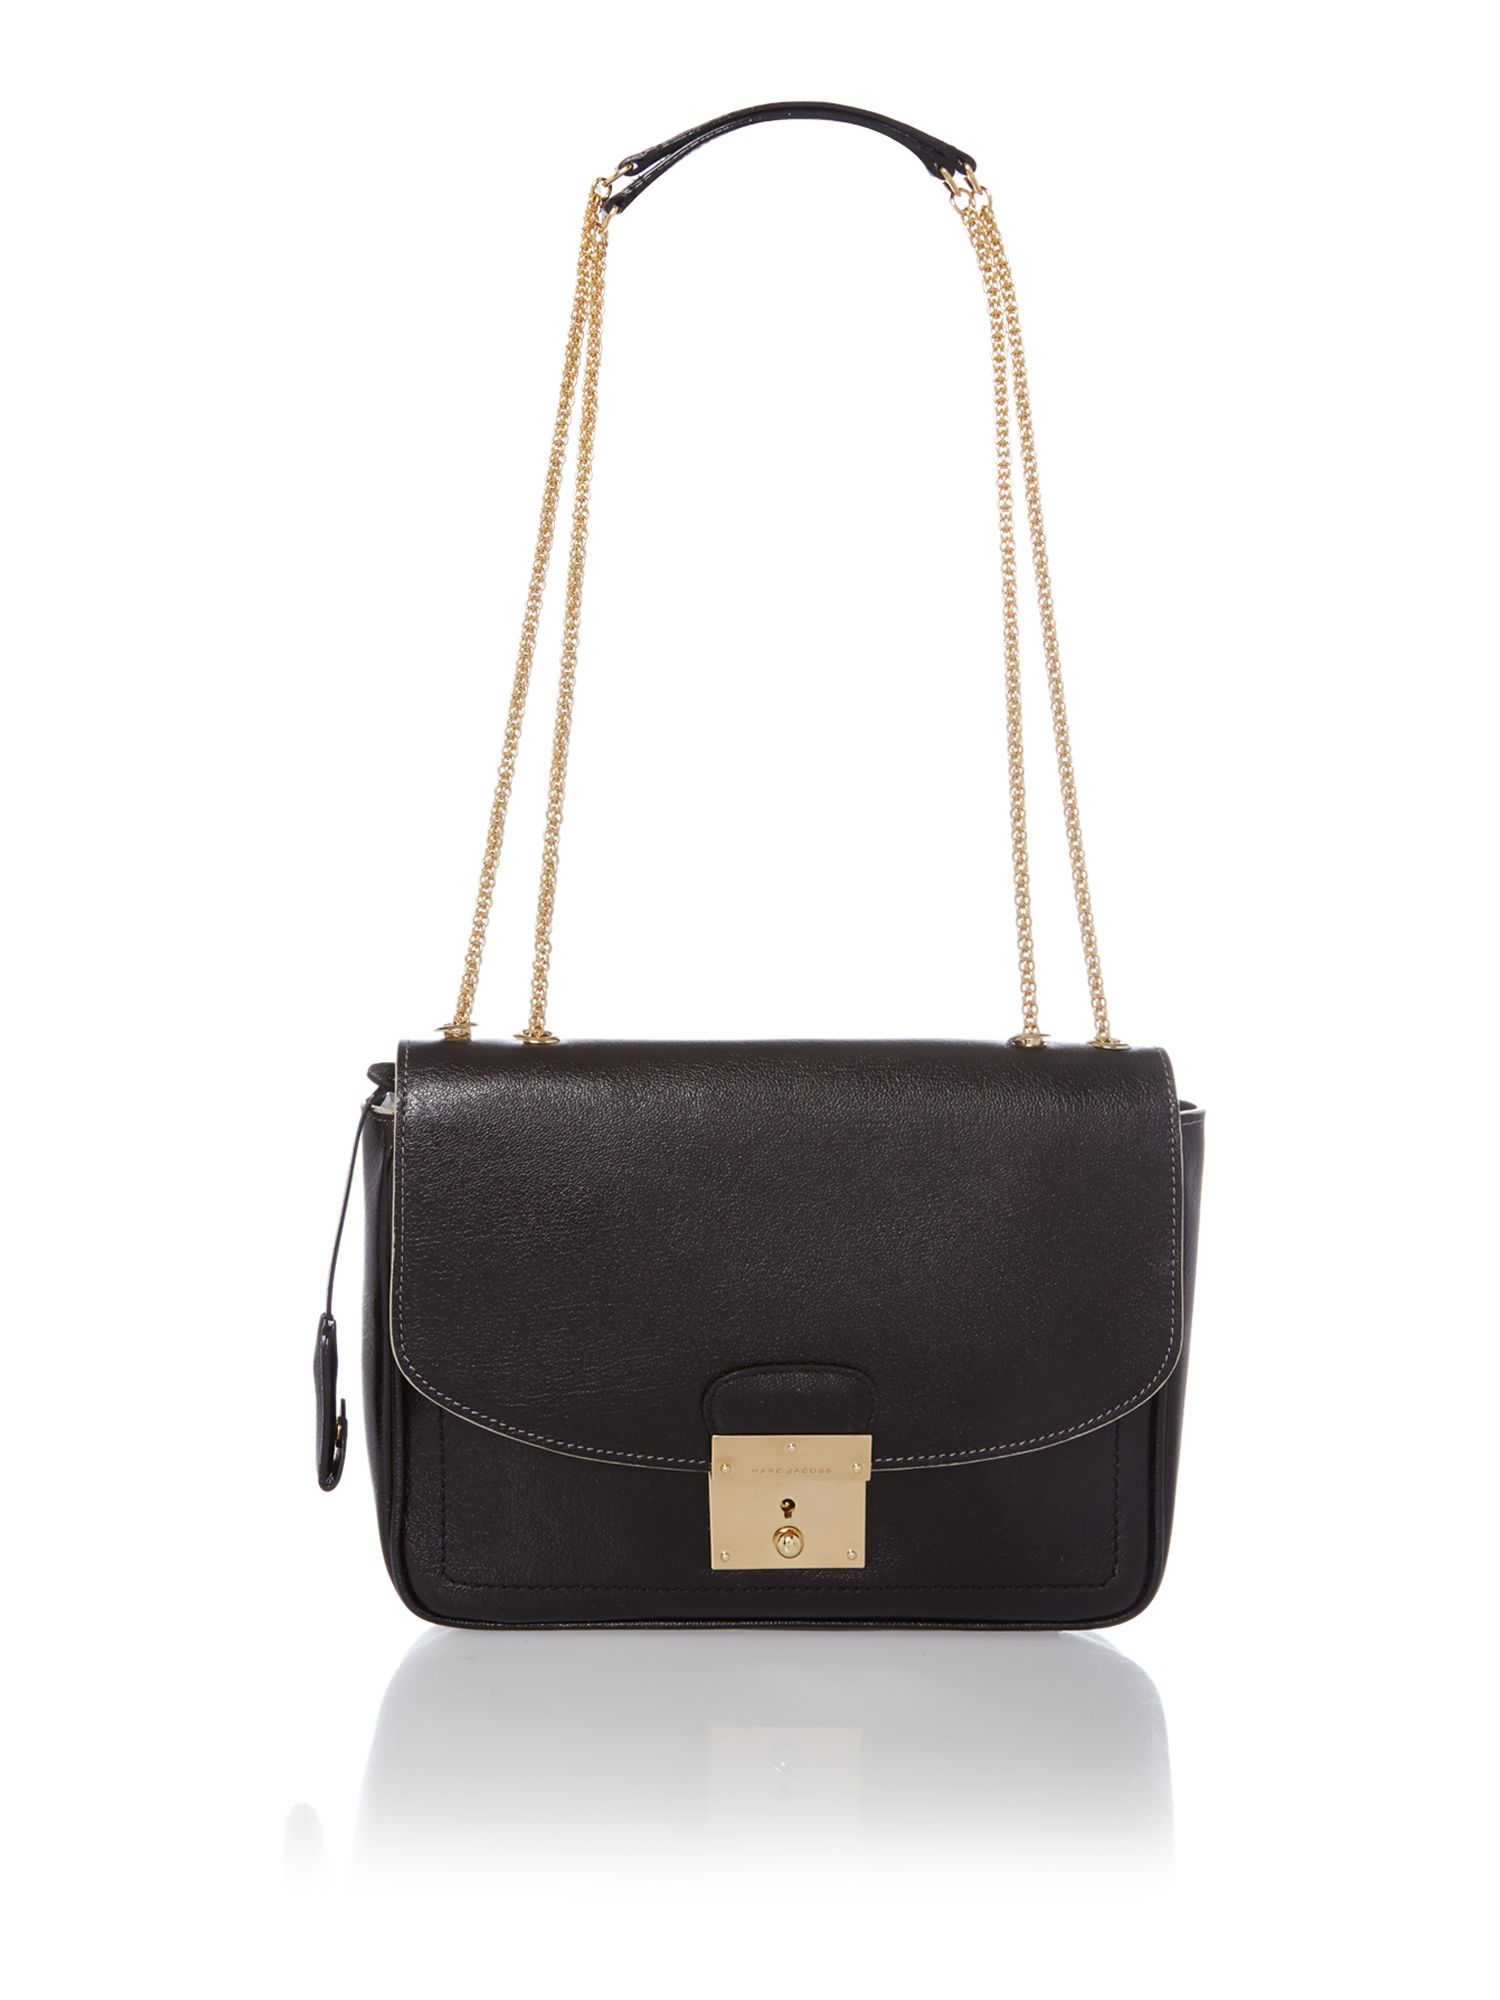 The 1984 mini black shoulder bag